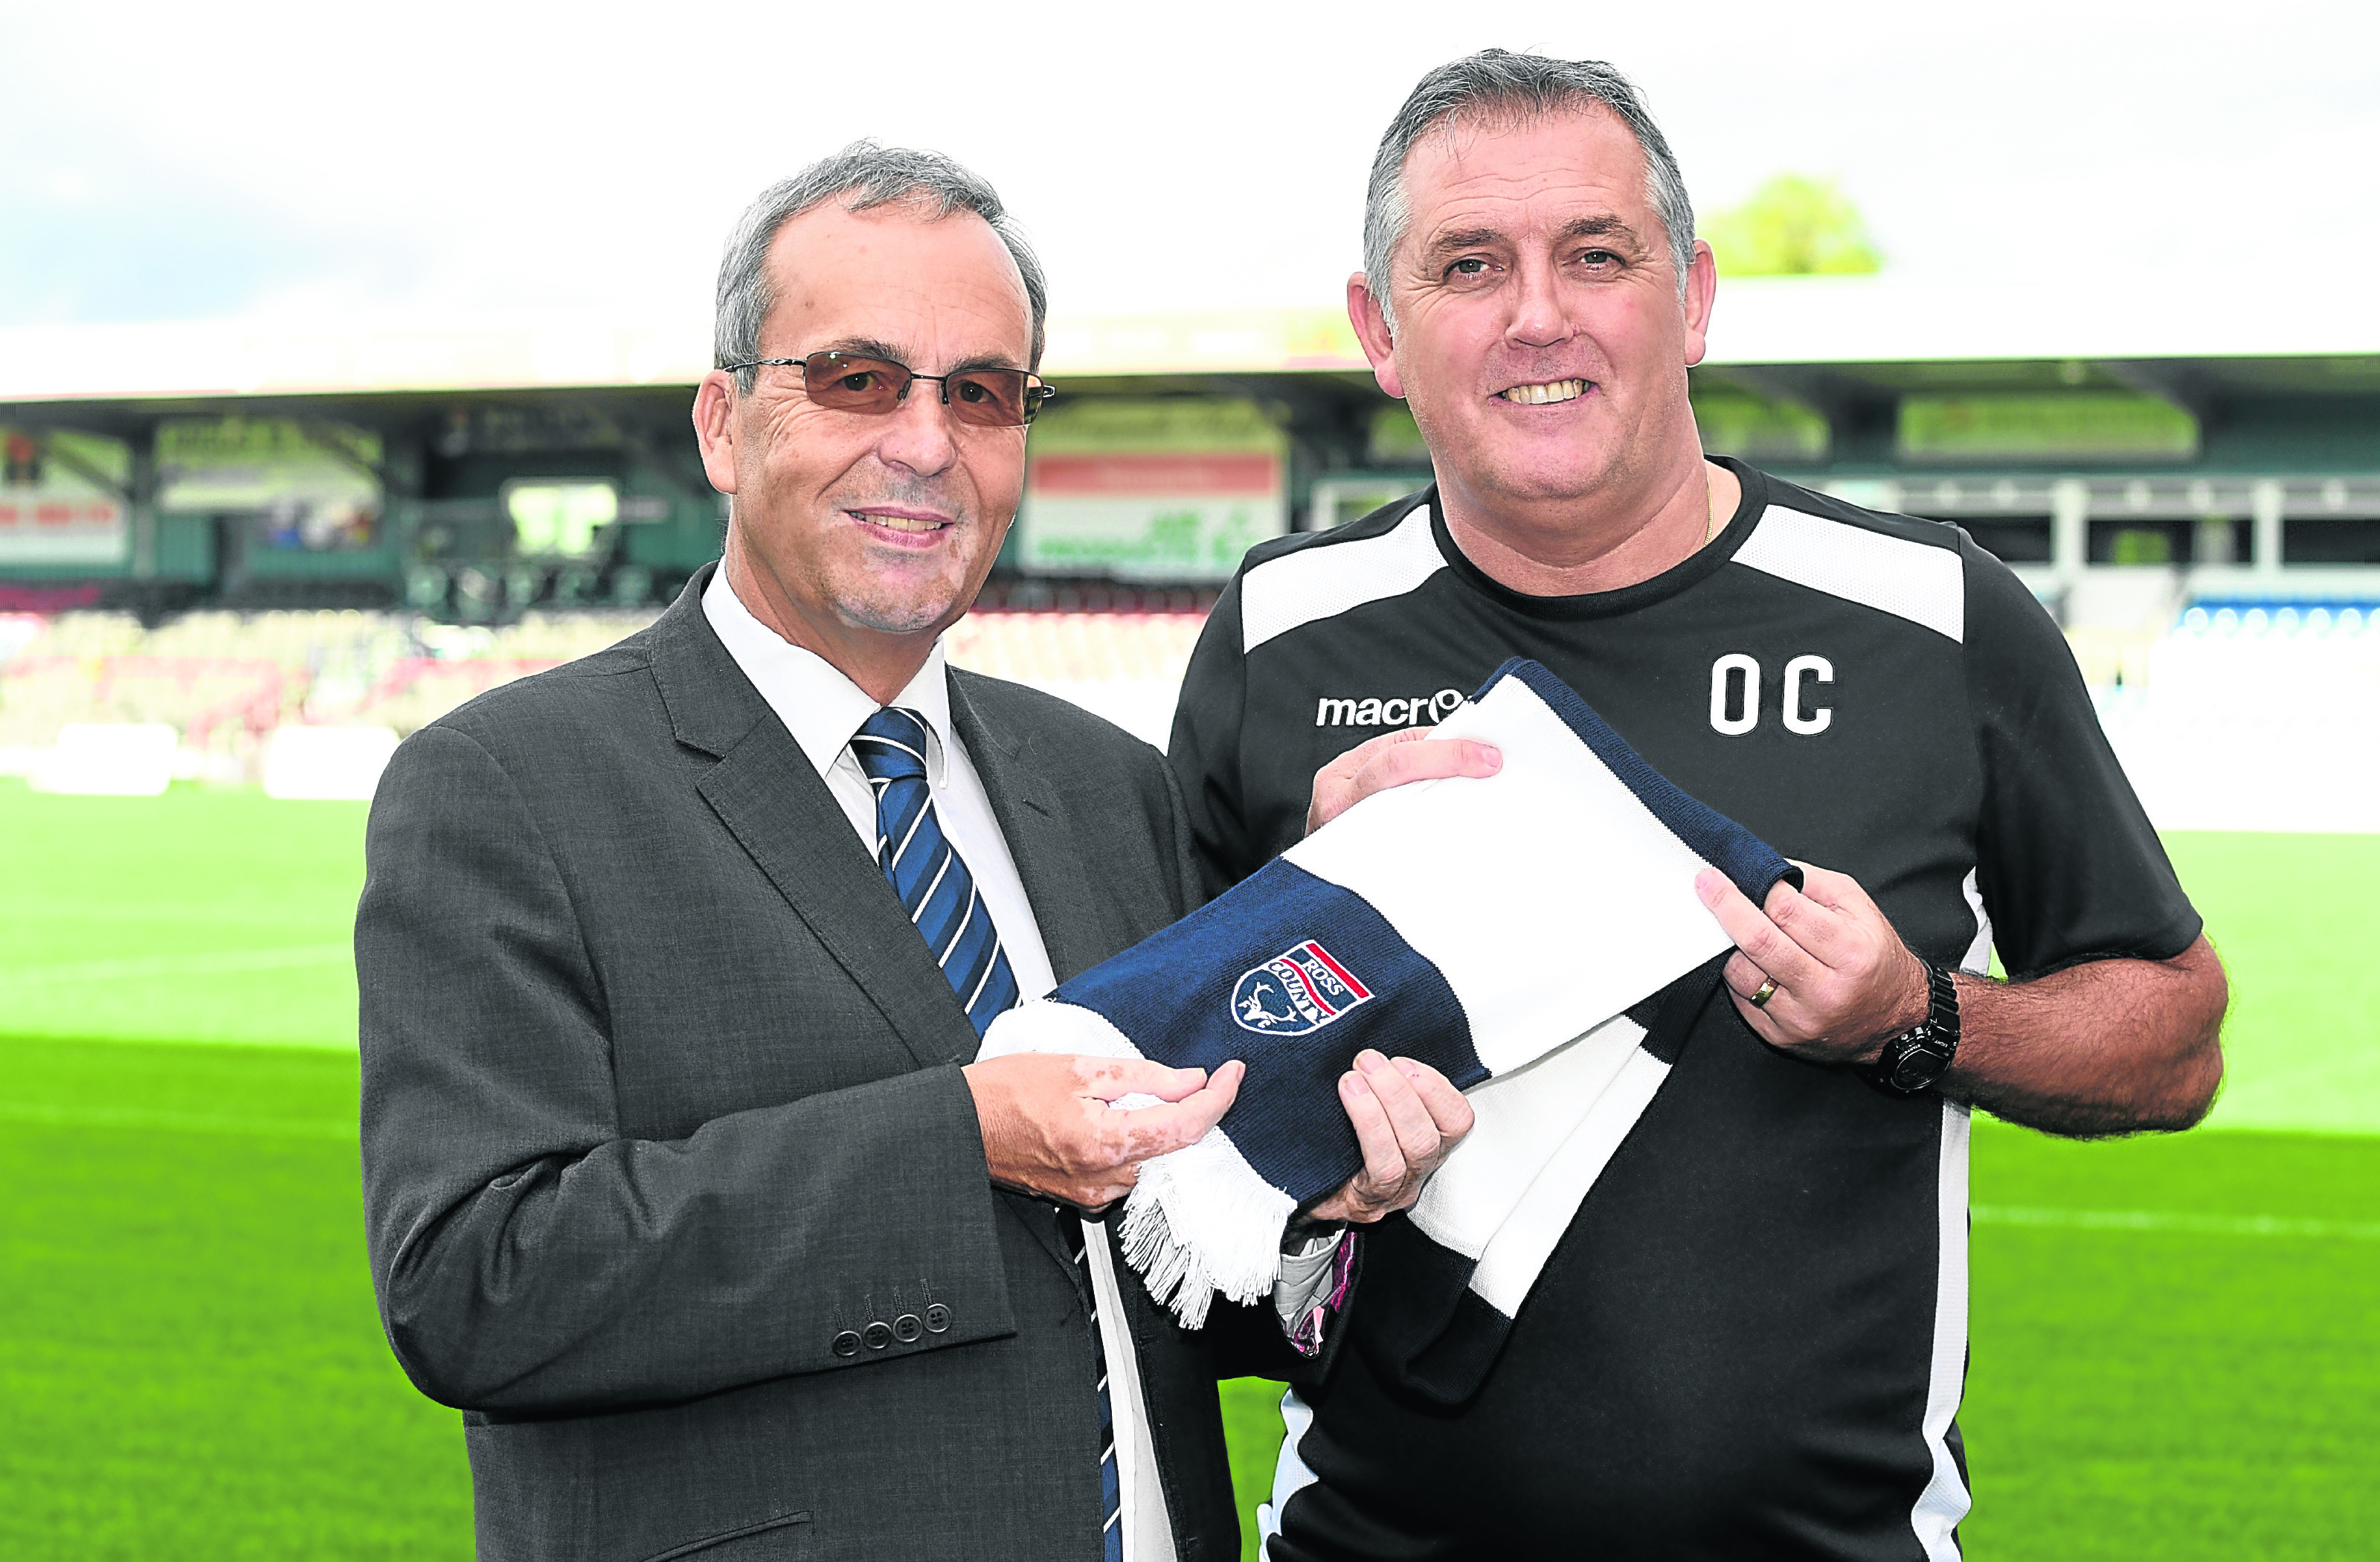 Owen Coyle meets the press as he is unveiled as Ross County's new manager, alongside chairman Roy McGregor (left)